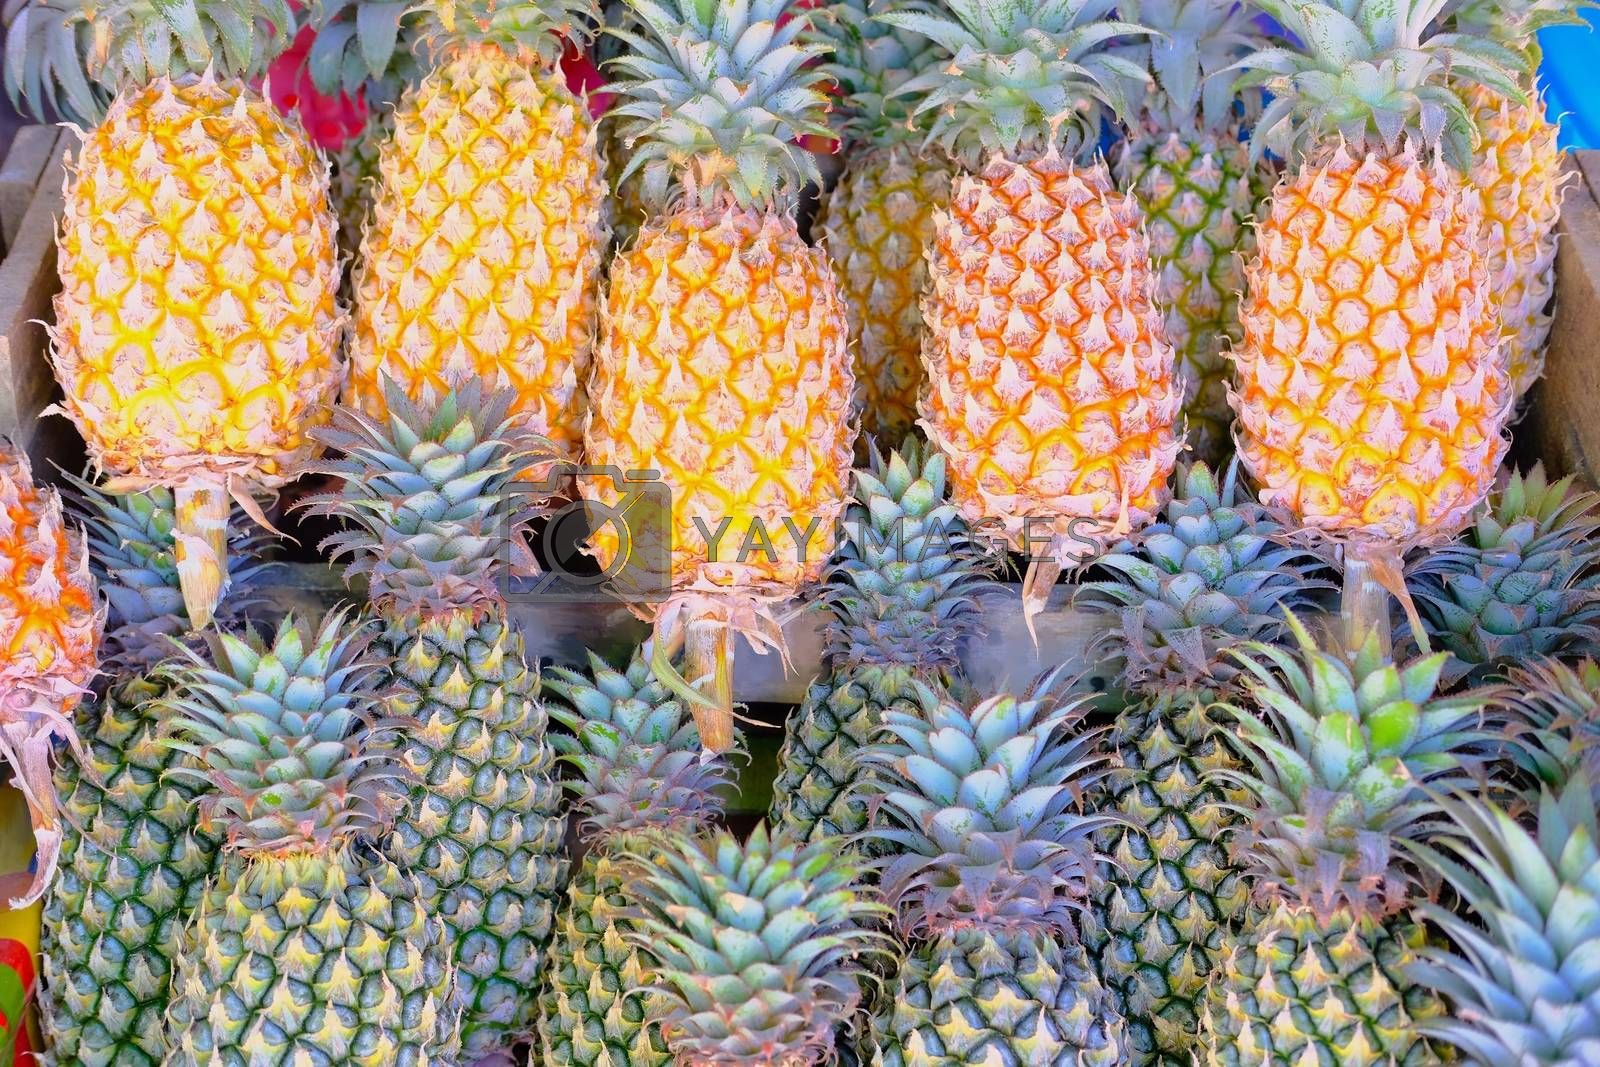 Collection of tropical fruit Sweet Pineapples Stack selling in fruit market.